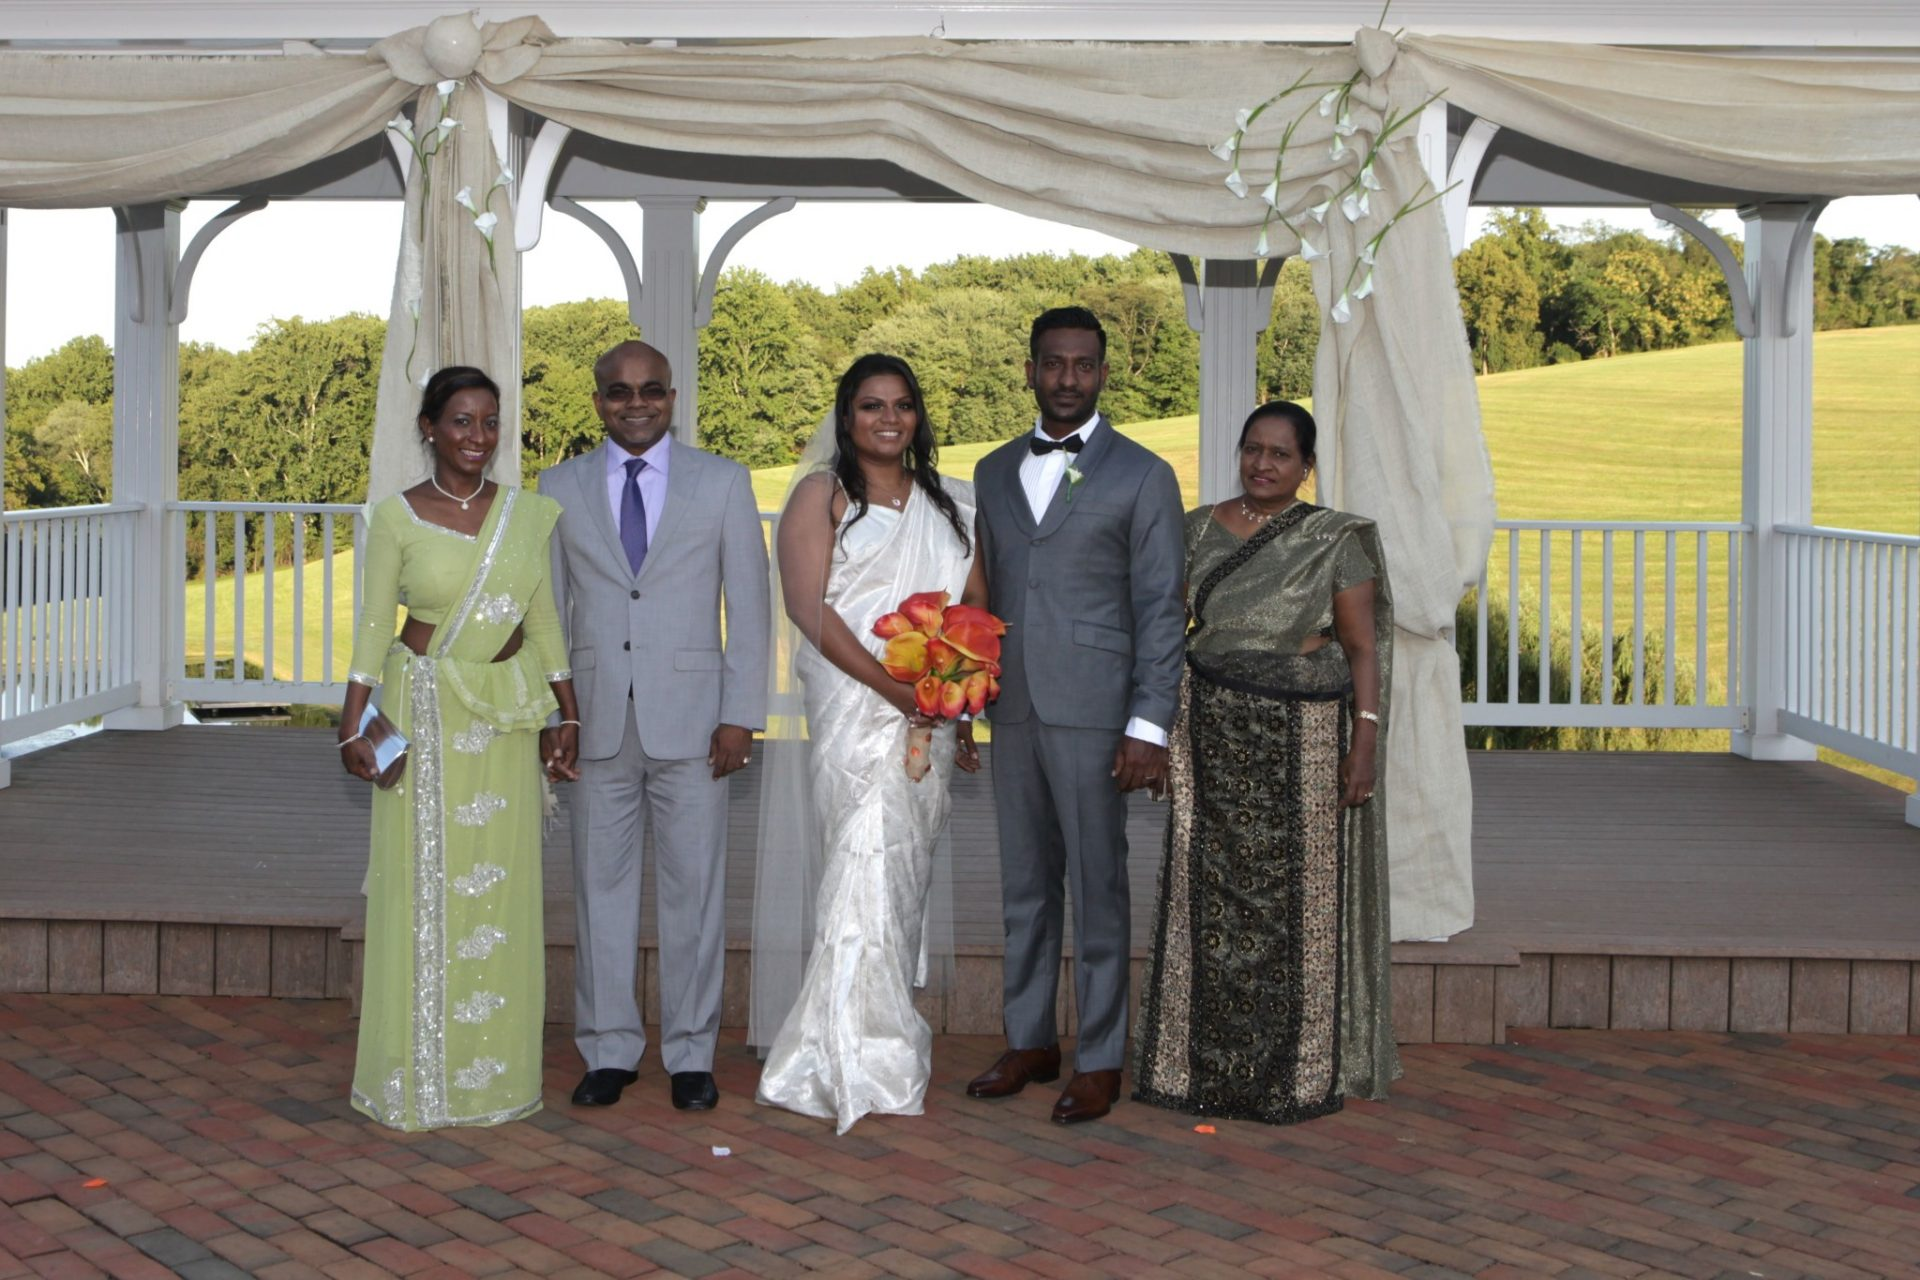 Family photograph in front of wedding pavilion